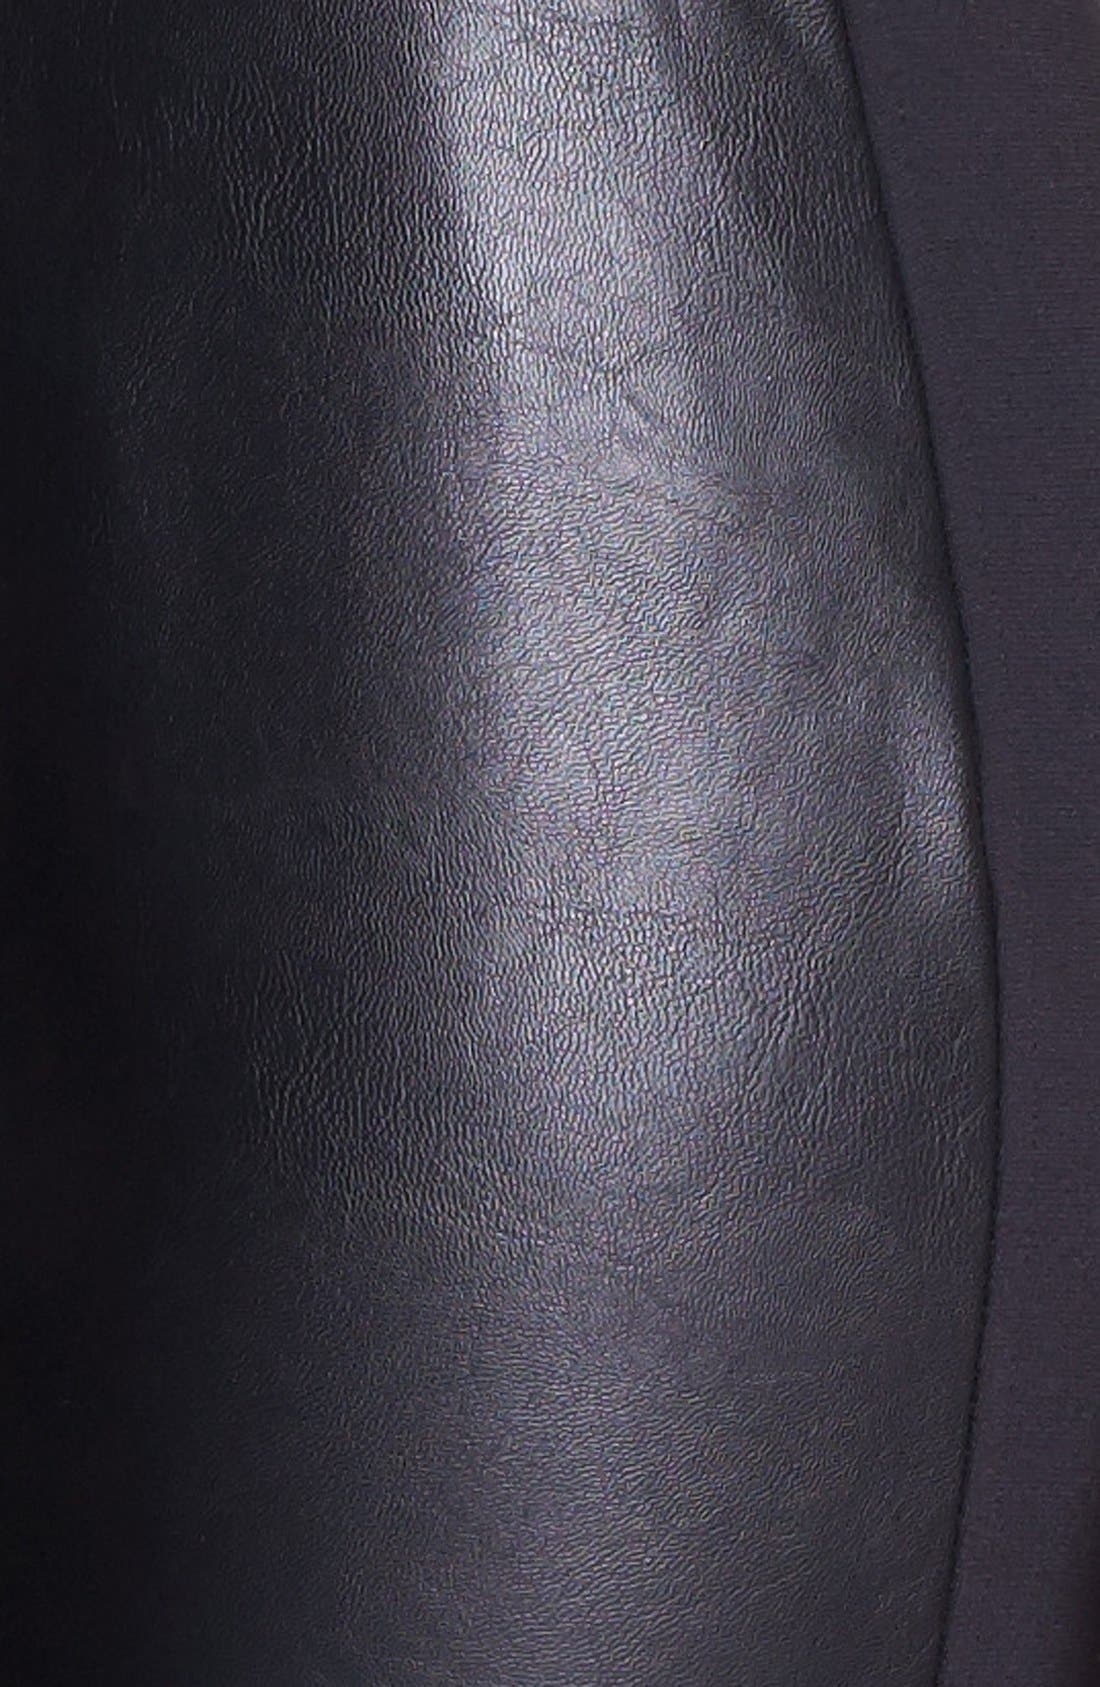 Faux Leather & Stretch Ponte Leggings,                             Alternate thumbnail 6, color,                             001